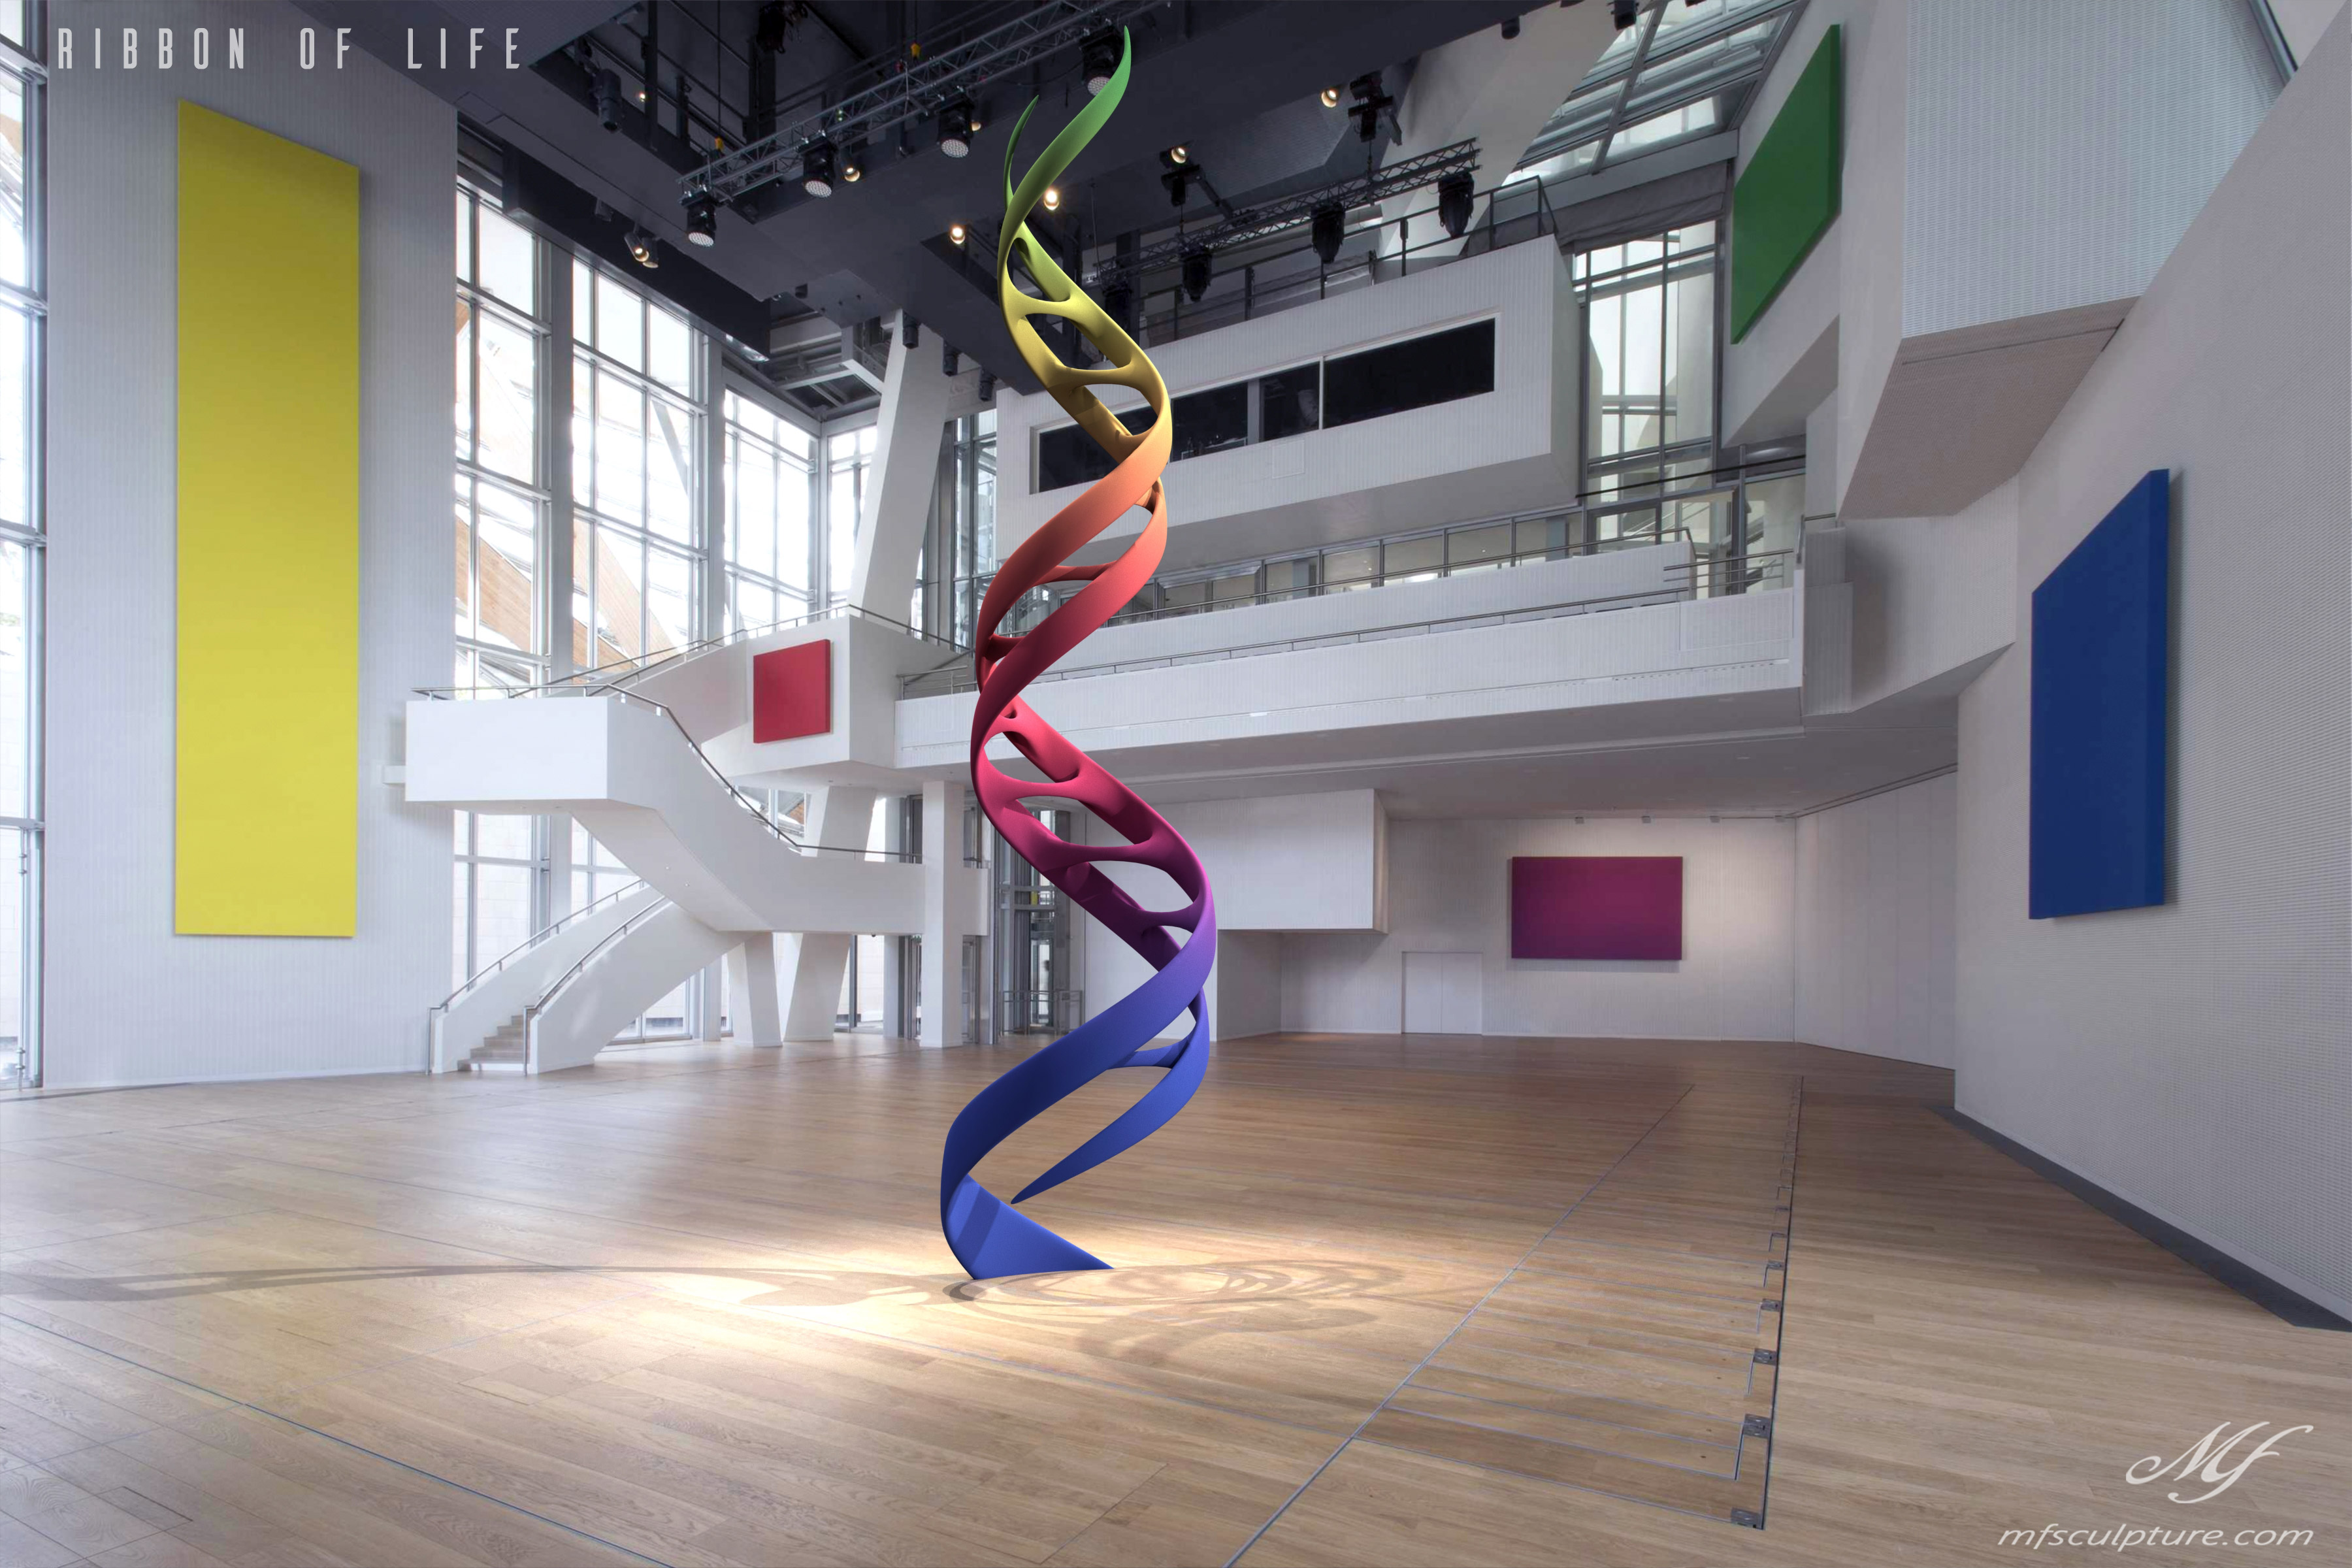 Auditorium Louis vuitton DNA Ribbon of Life Science Contemporary Sculpt Color Panels Red Yellow Blue Green Purple